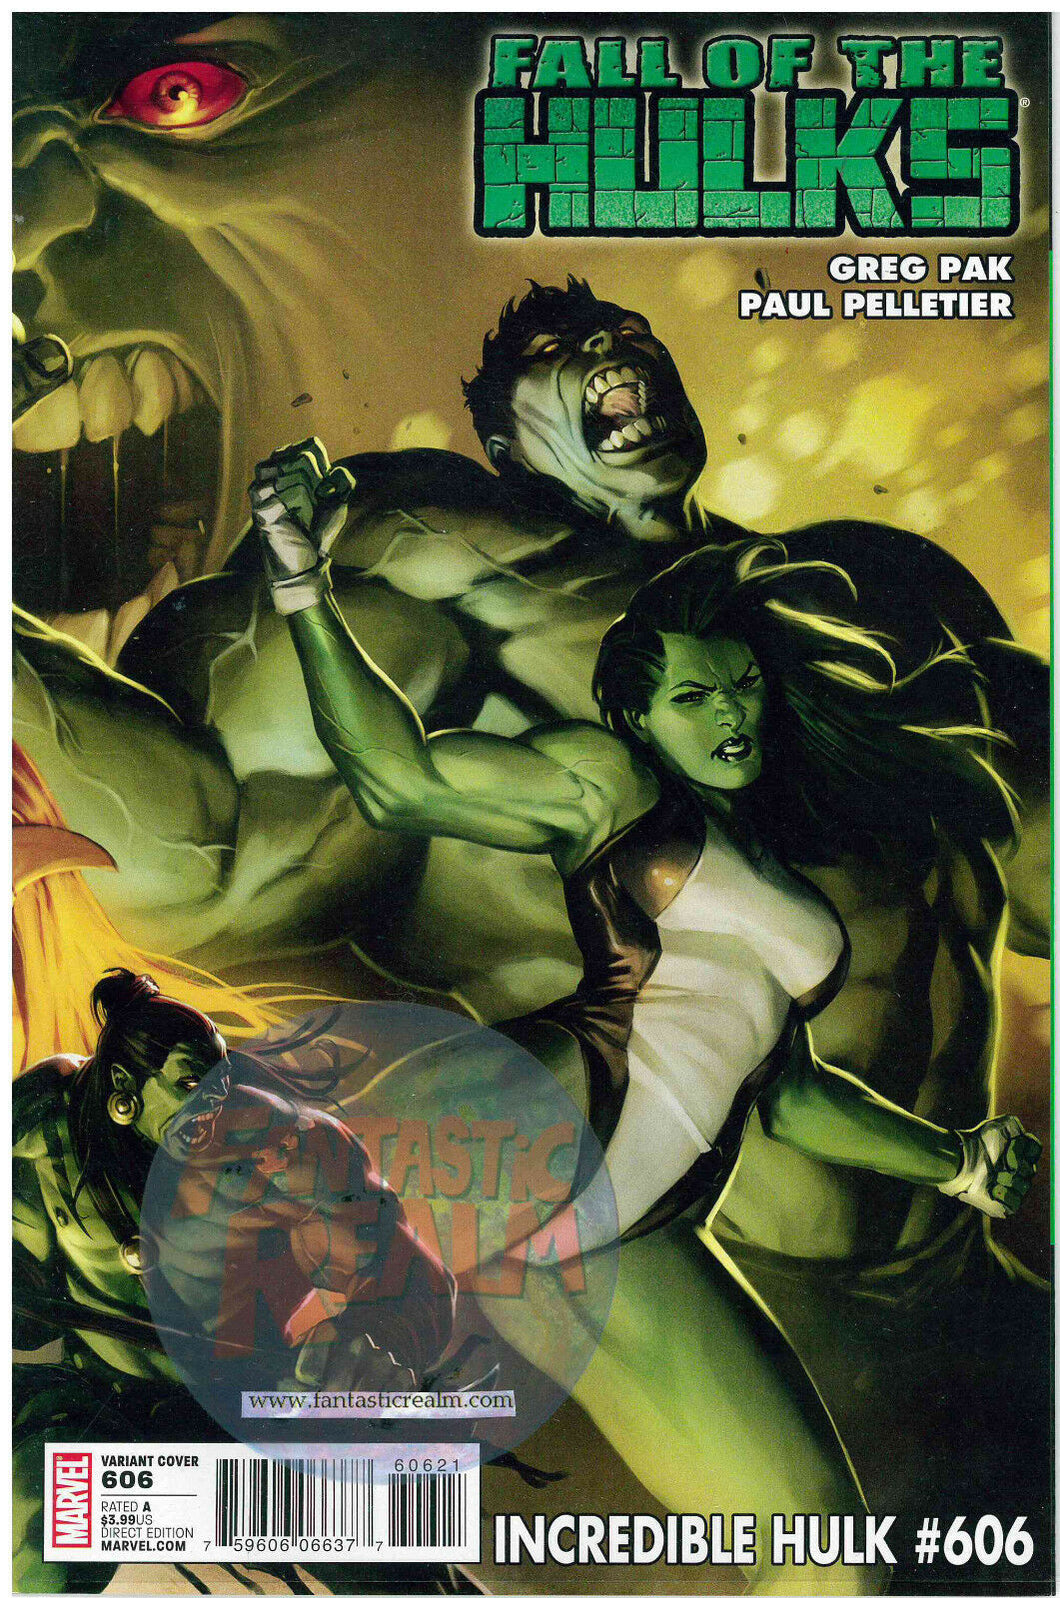 Incredible Hulk #606 Marko Djurdjevic Variant Fall of the Hulks